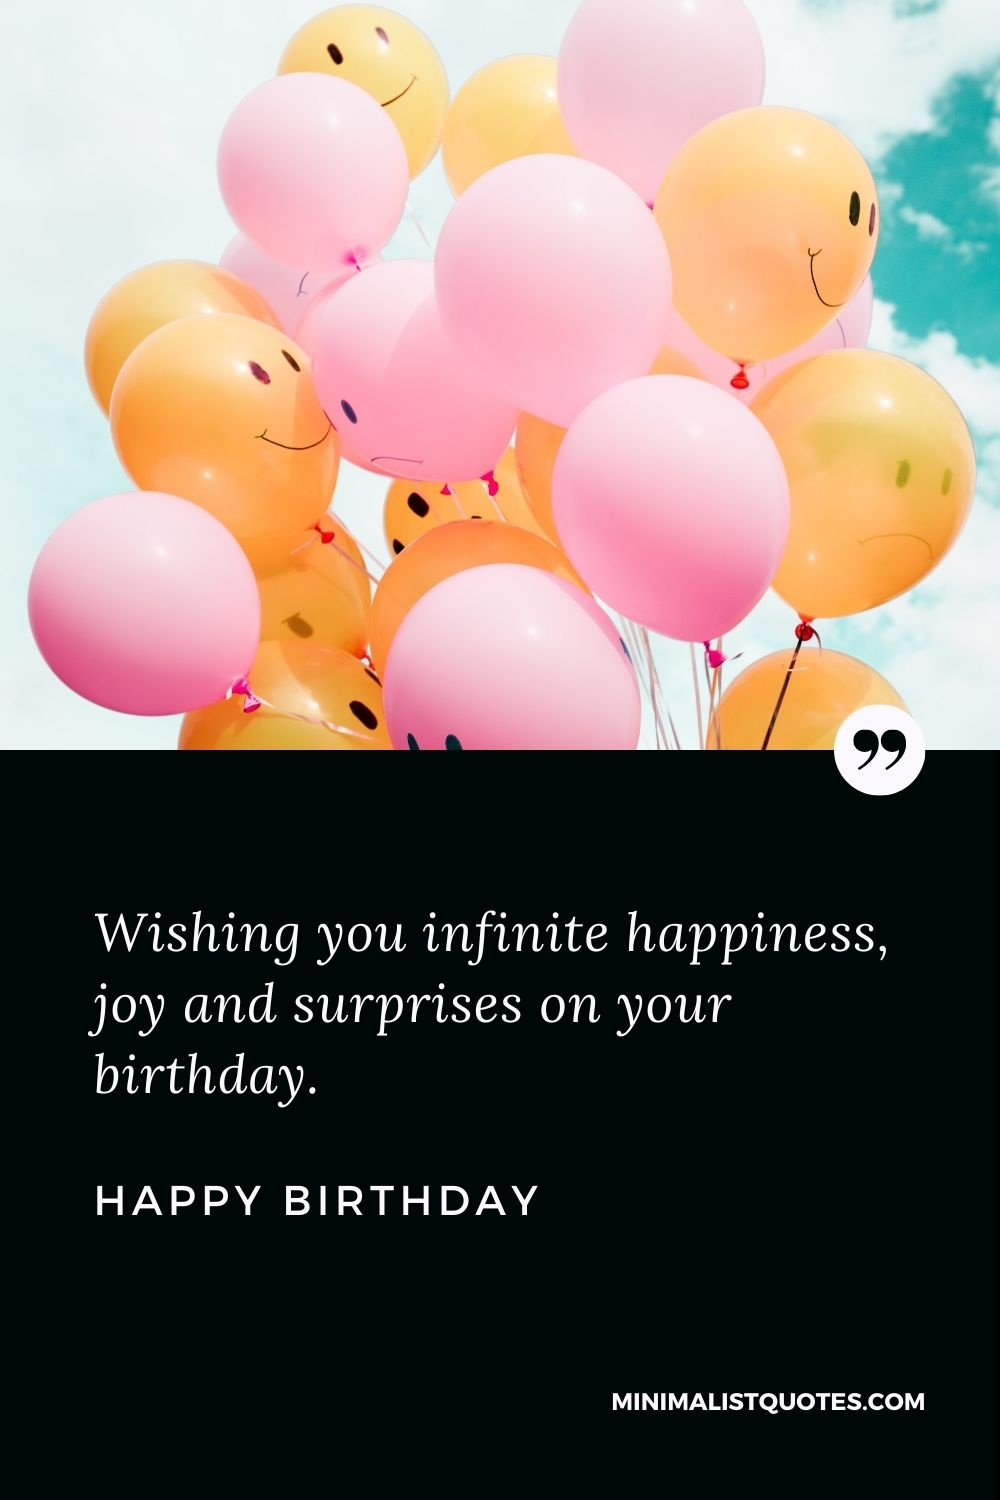 Happy Birthday Wishes - Wishing you infinite happiness, joy and surprises on your birthday.